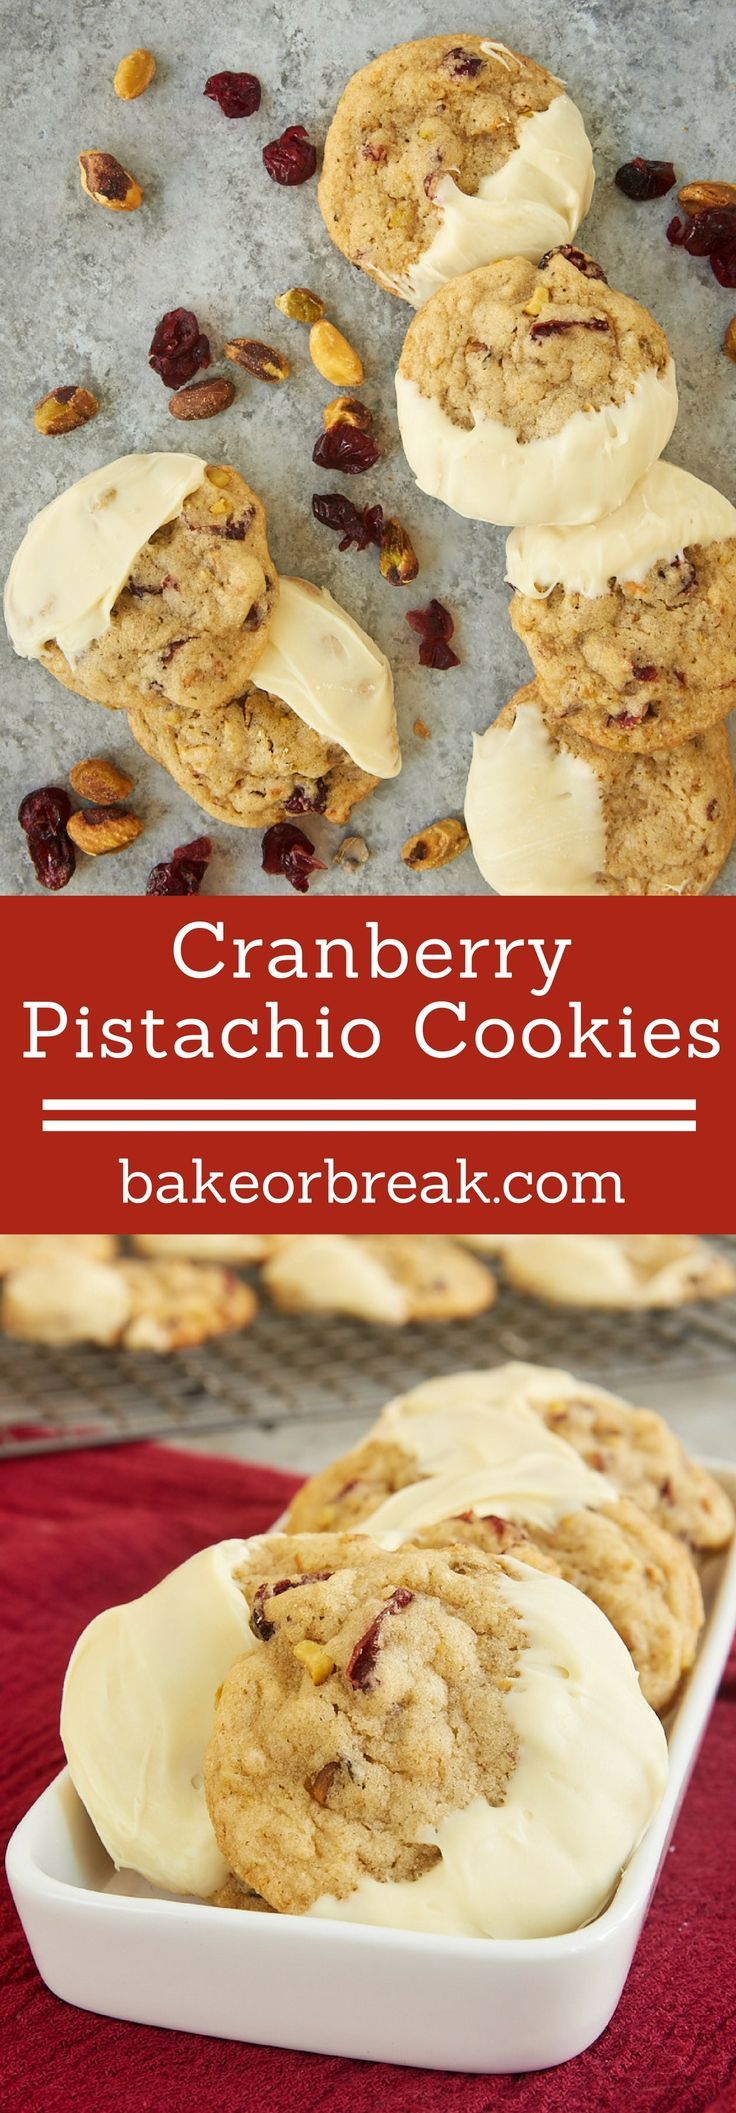 Cranberry Pistachio Cookies are jam-packed with plenty of sweet, tart cranberries and crunchy pistachios. The addition of white chocolate really puts them over the top! - Bake or Break